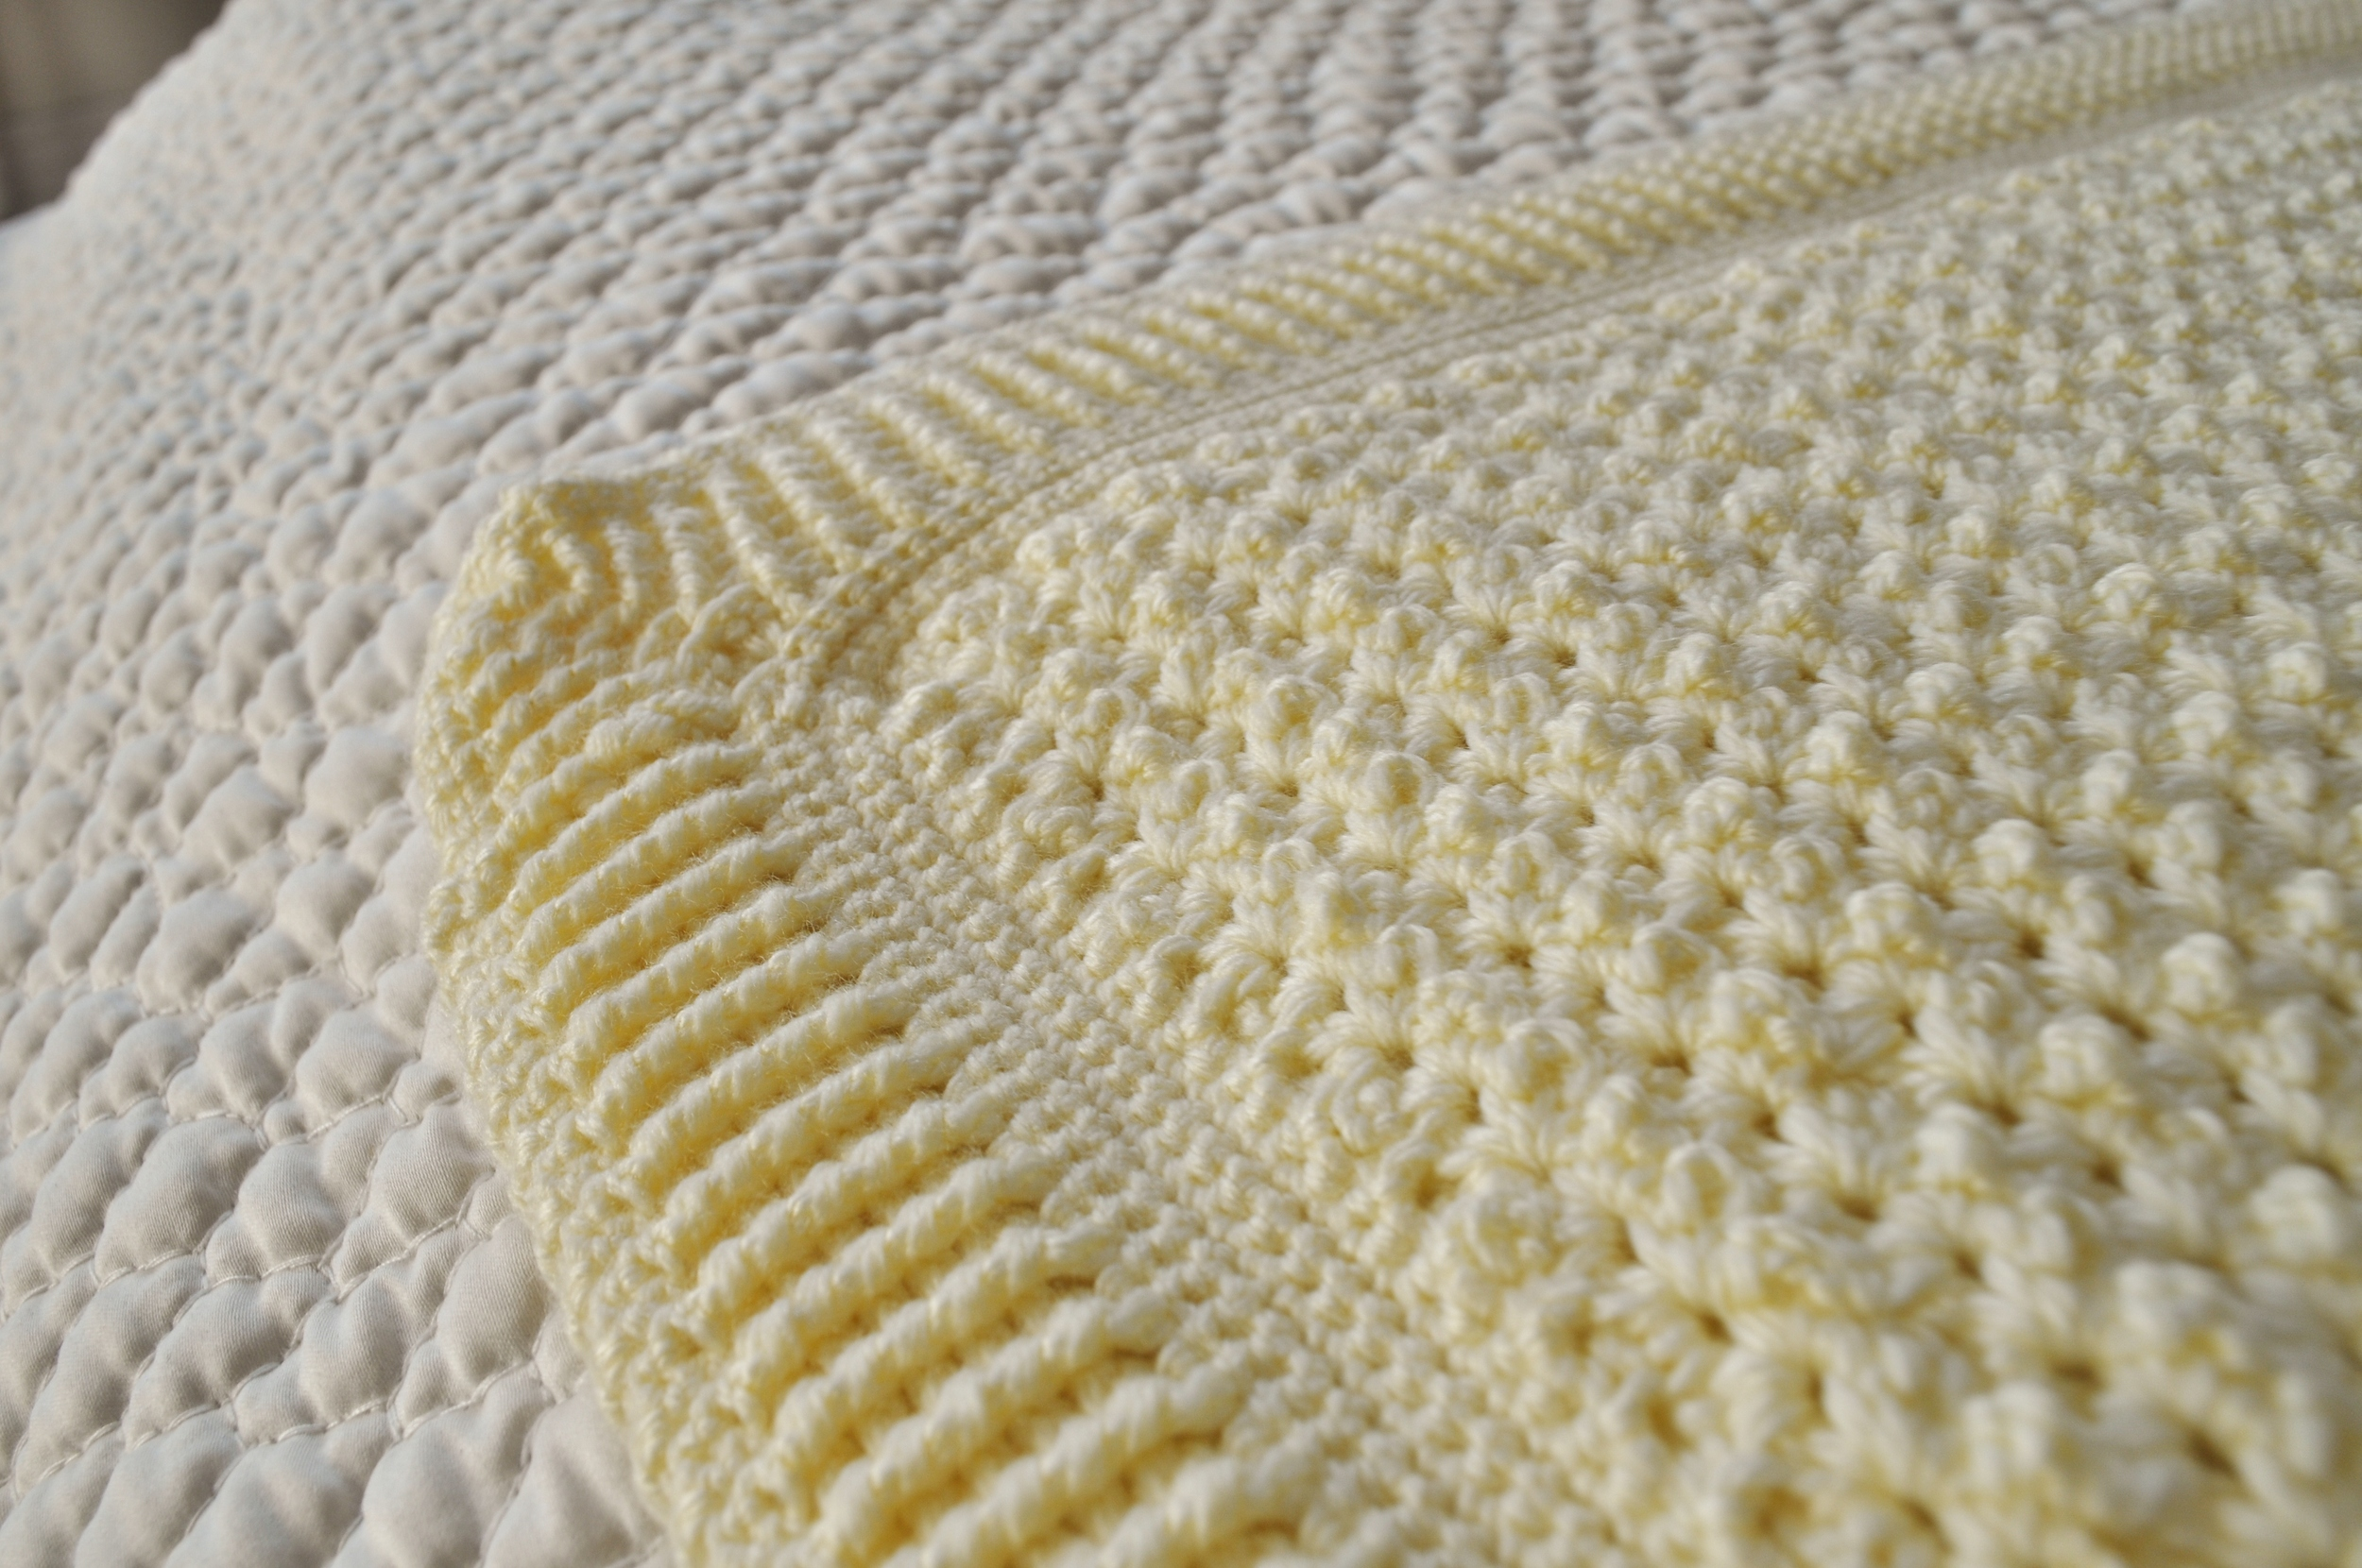 Crocheted Blanket Close up, corner